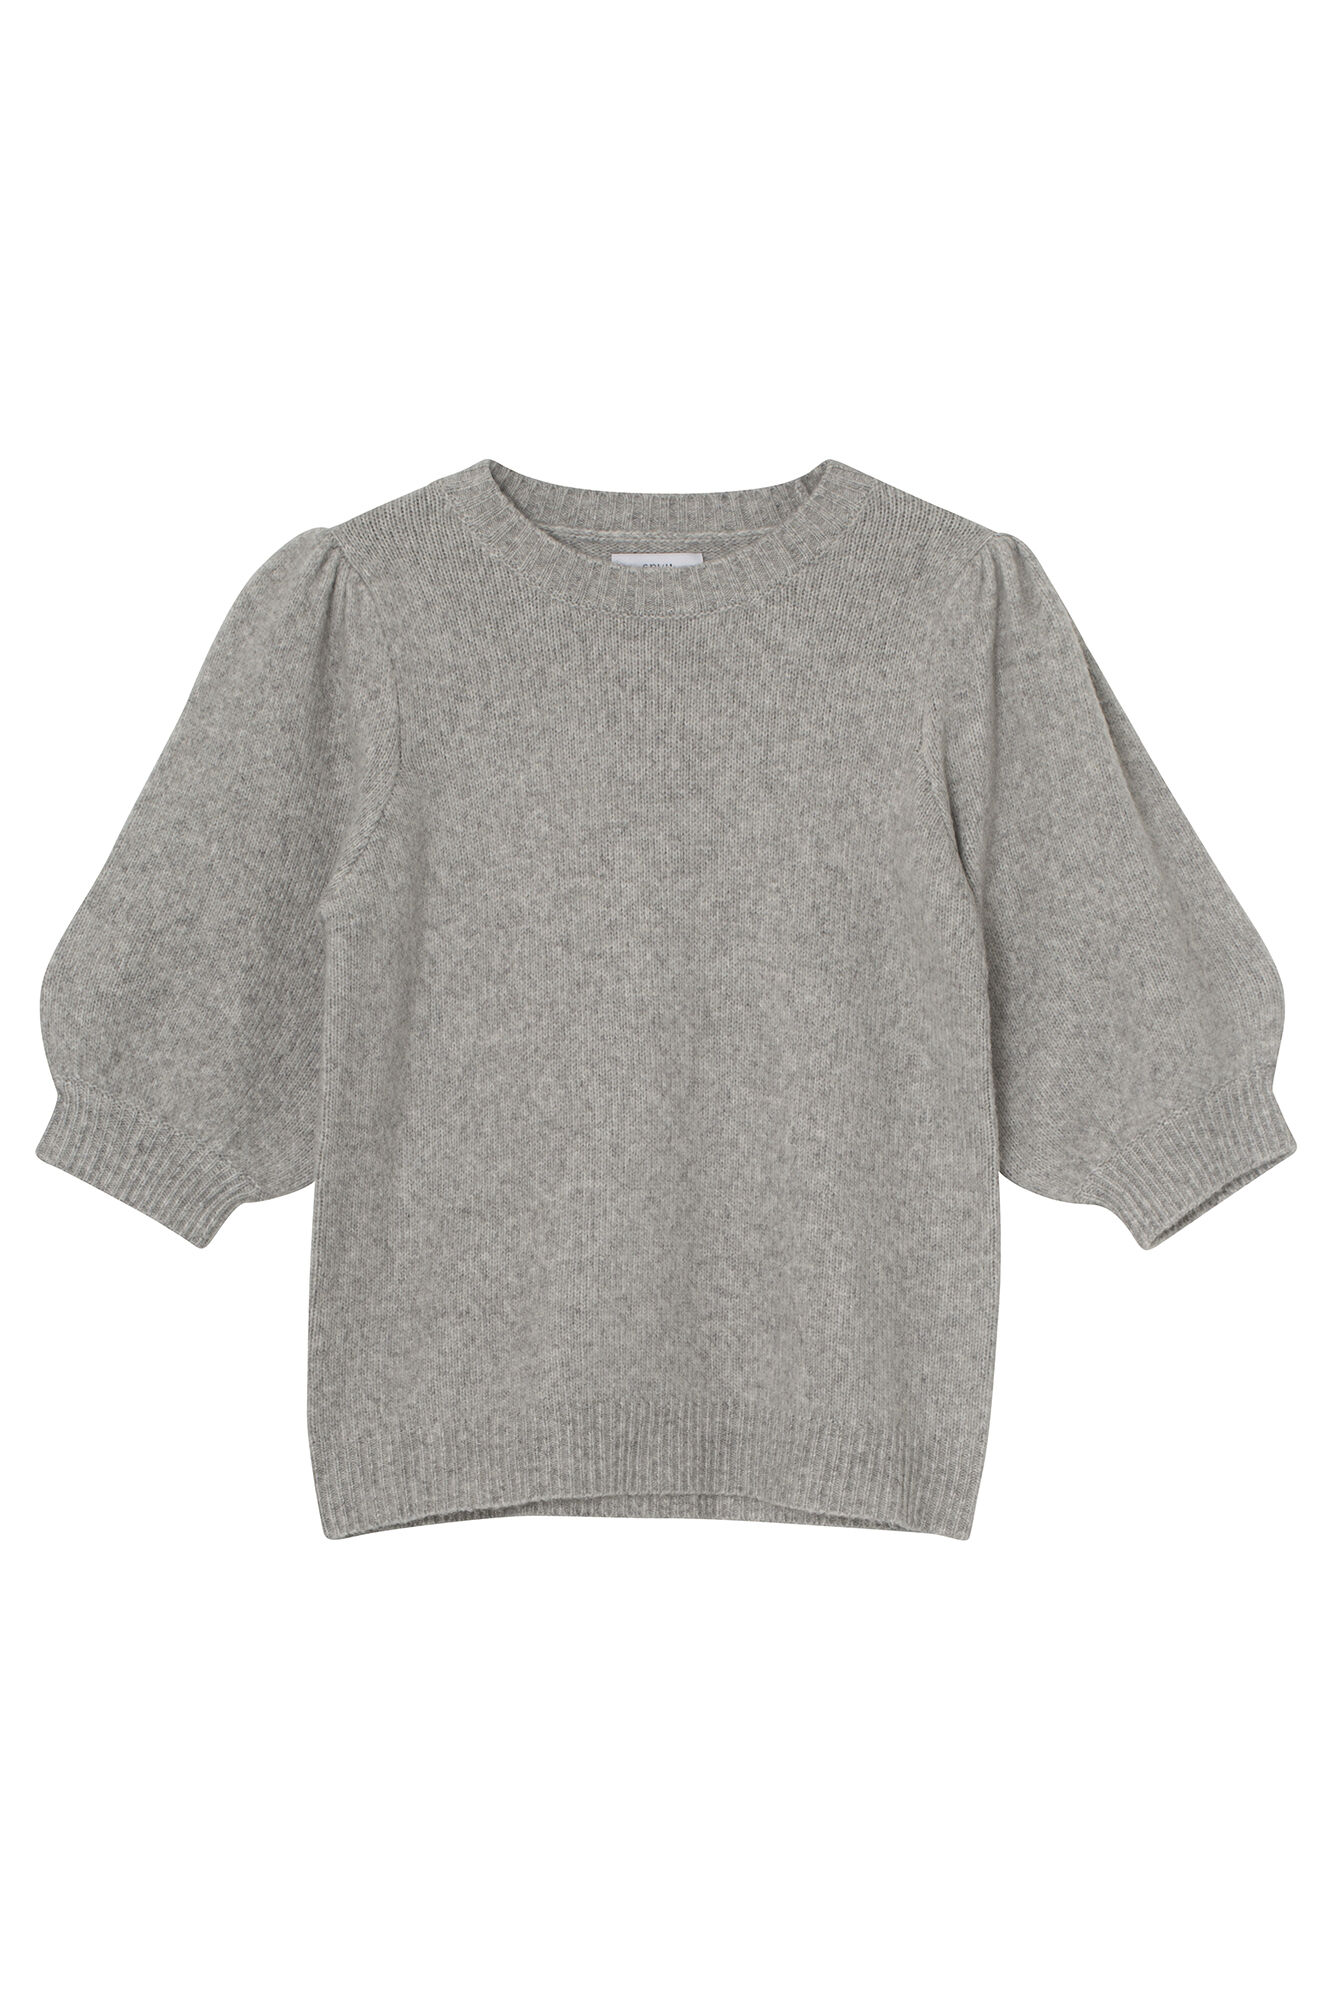 ENSOYA SS KNIT 5231, LIGHT GREY MEL.